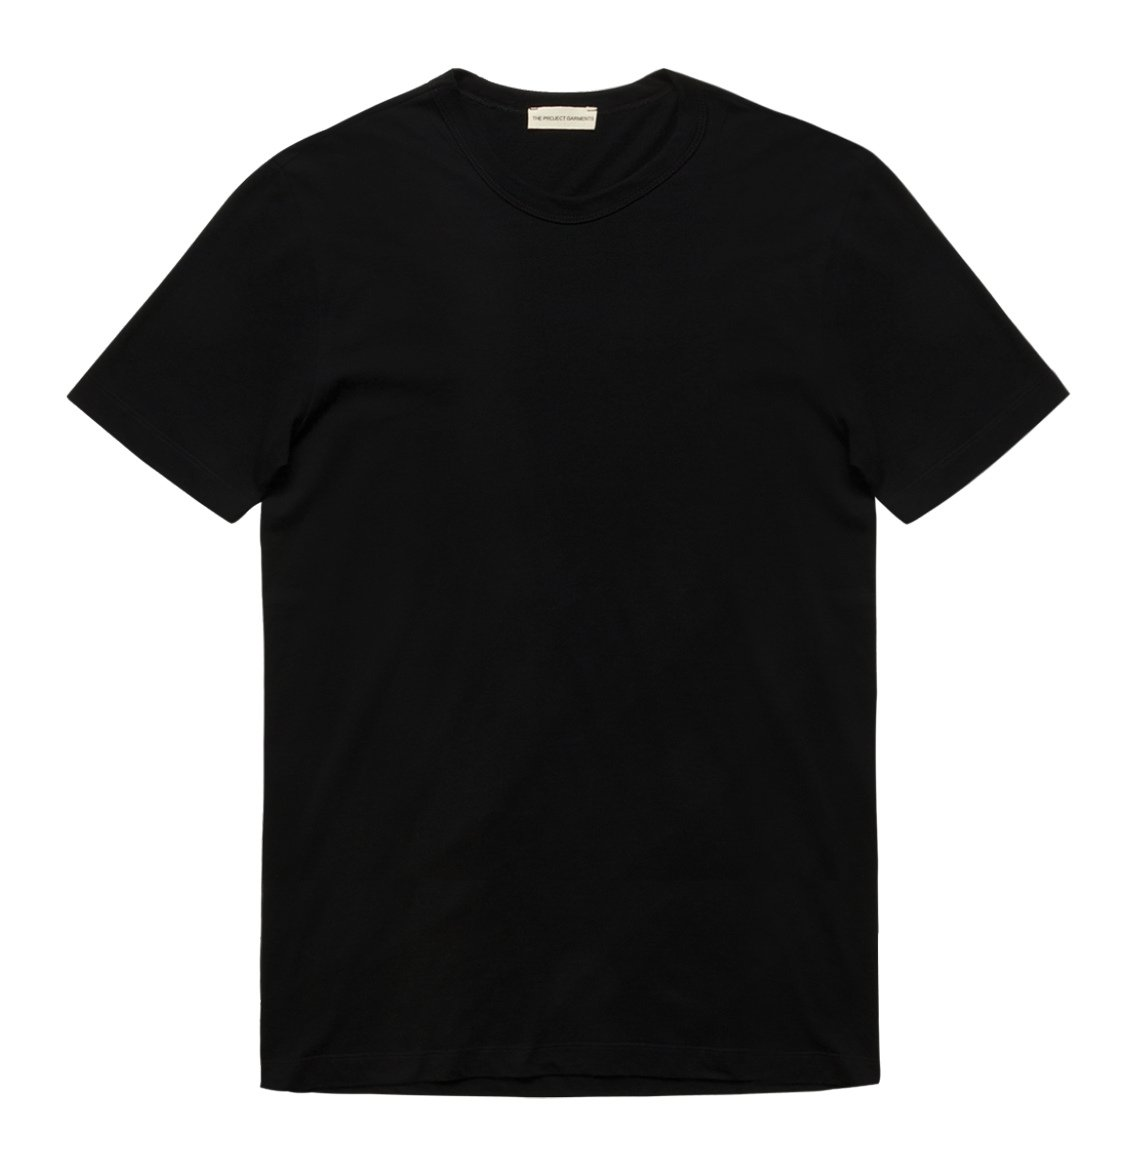 The Project Garments Crewneck Regular Fit Organic Cotton T-shirt Black